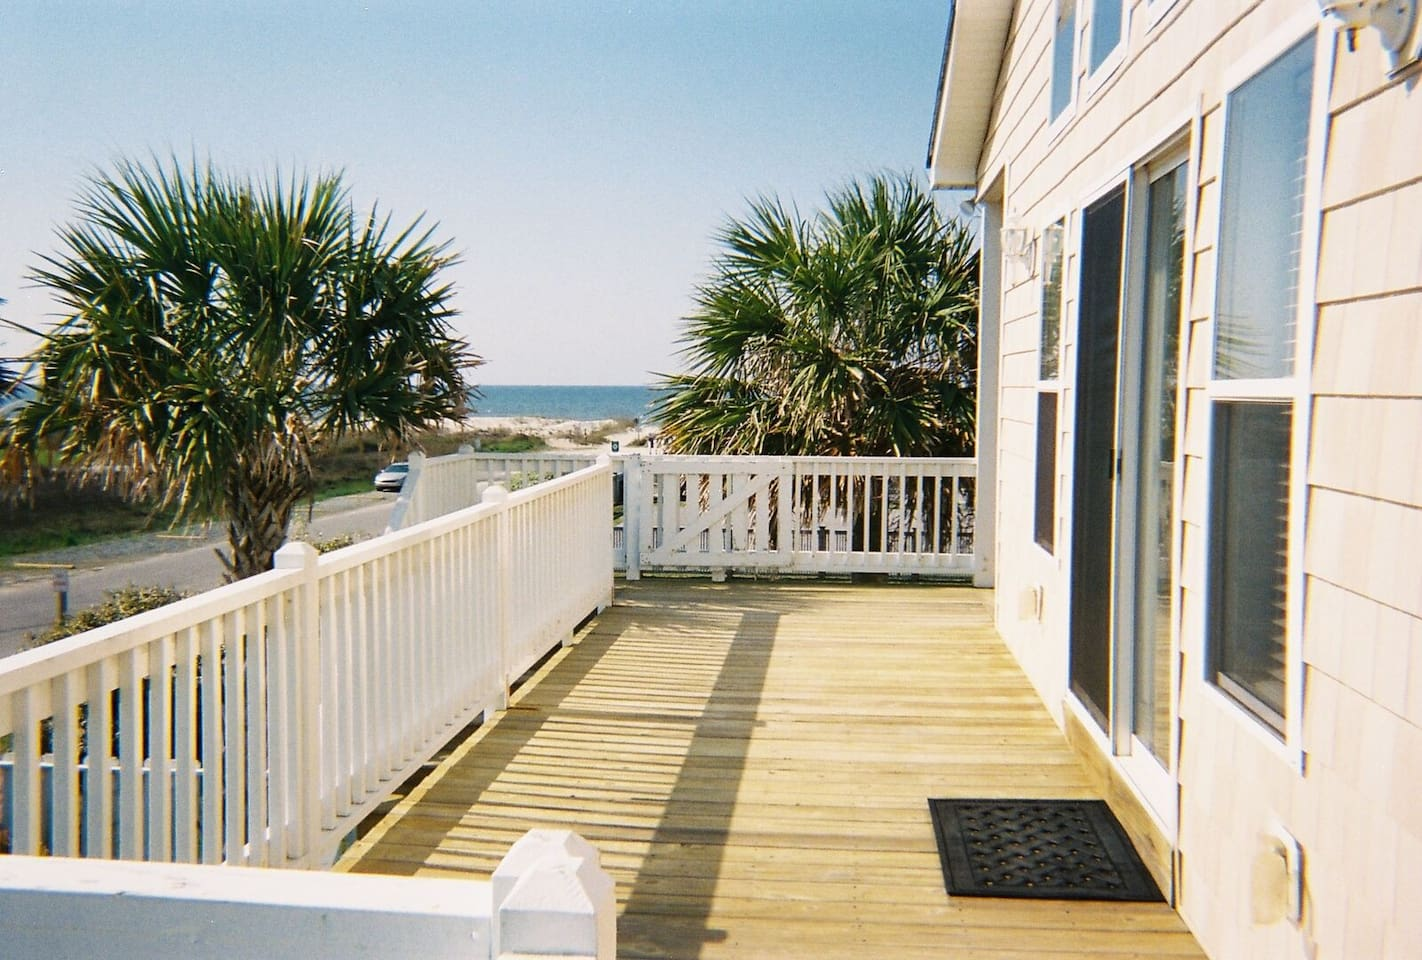 Your private deck with ocean view. This entrance is used for guests only. You are steps from the beach.